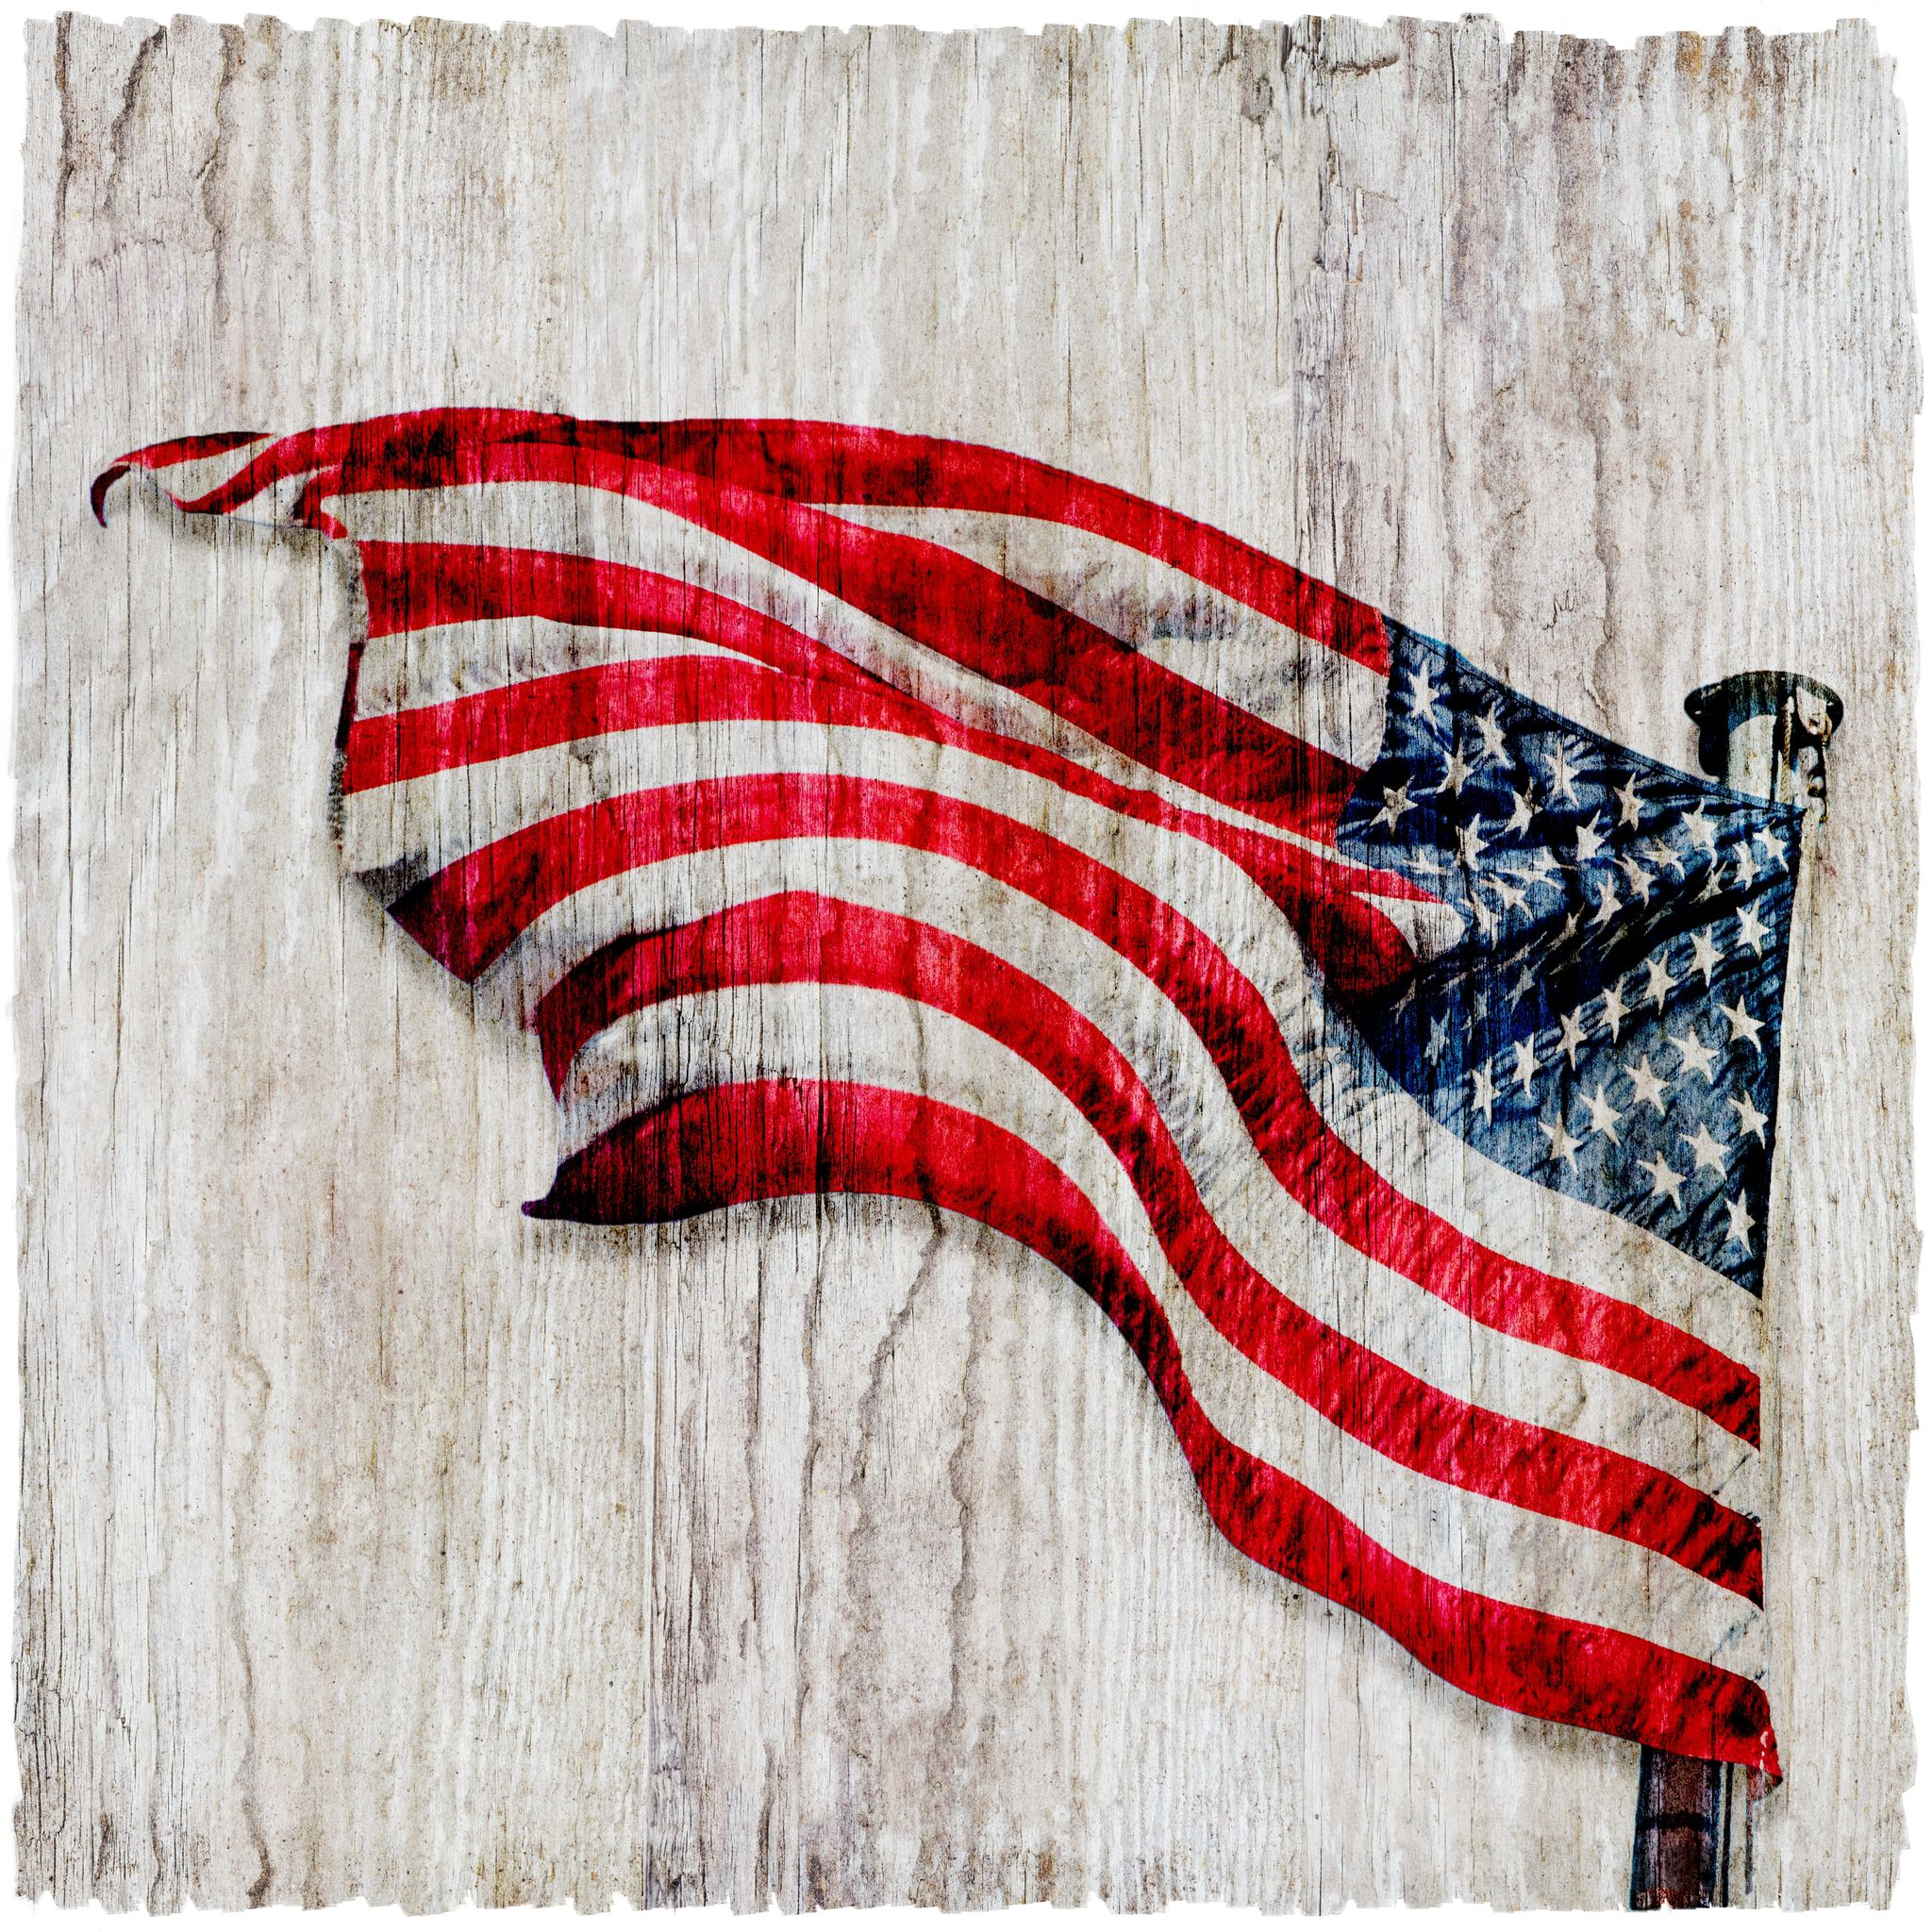 While Independence Day Is Behind Us, The Lessons From Our Forefathers Still Ring True